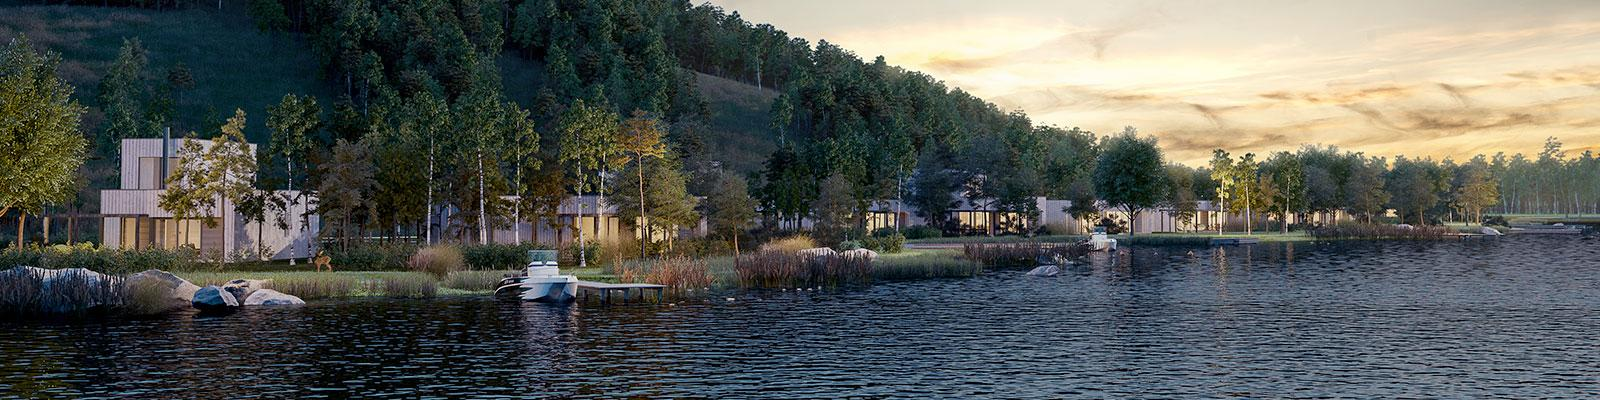 Neu bei Center Parcs: Terhills Resort